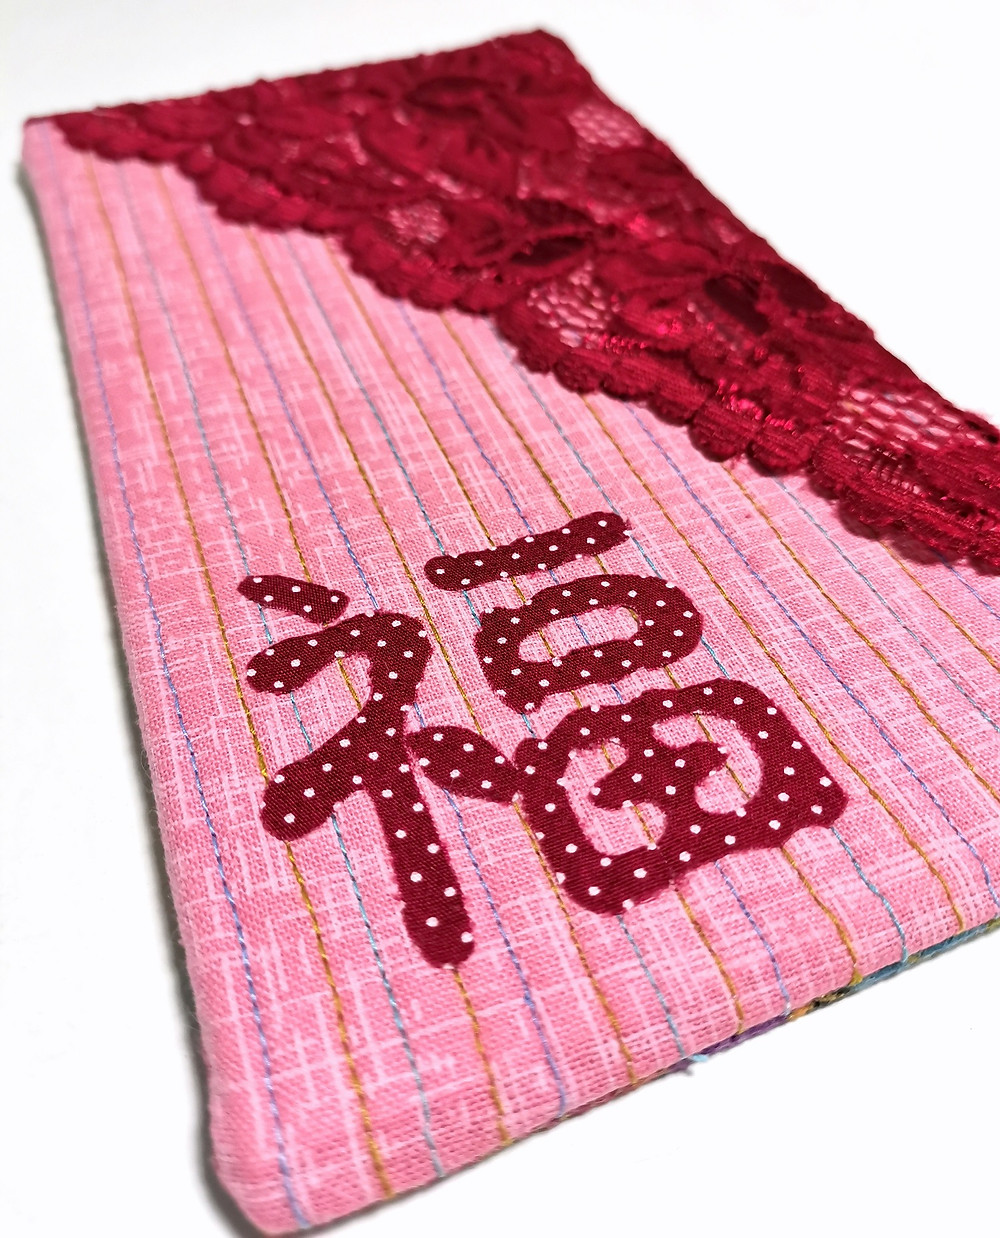 pink quilted applique ang pao red packet with lace